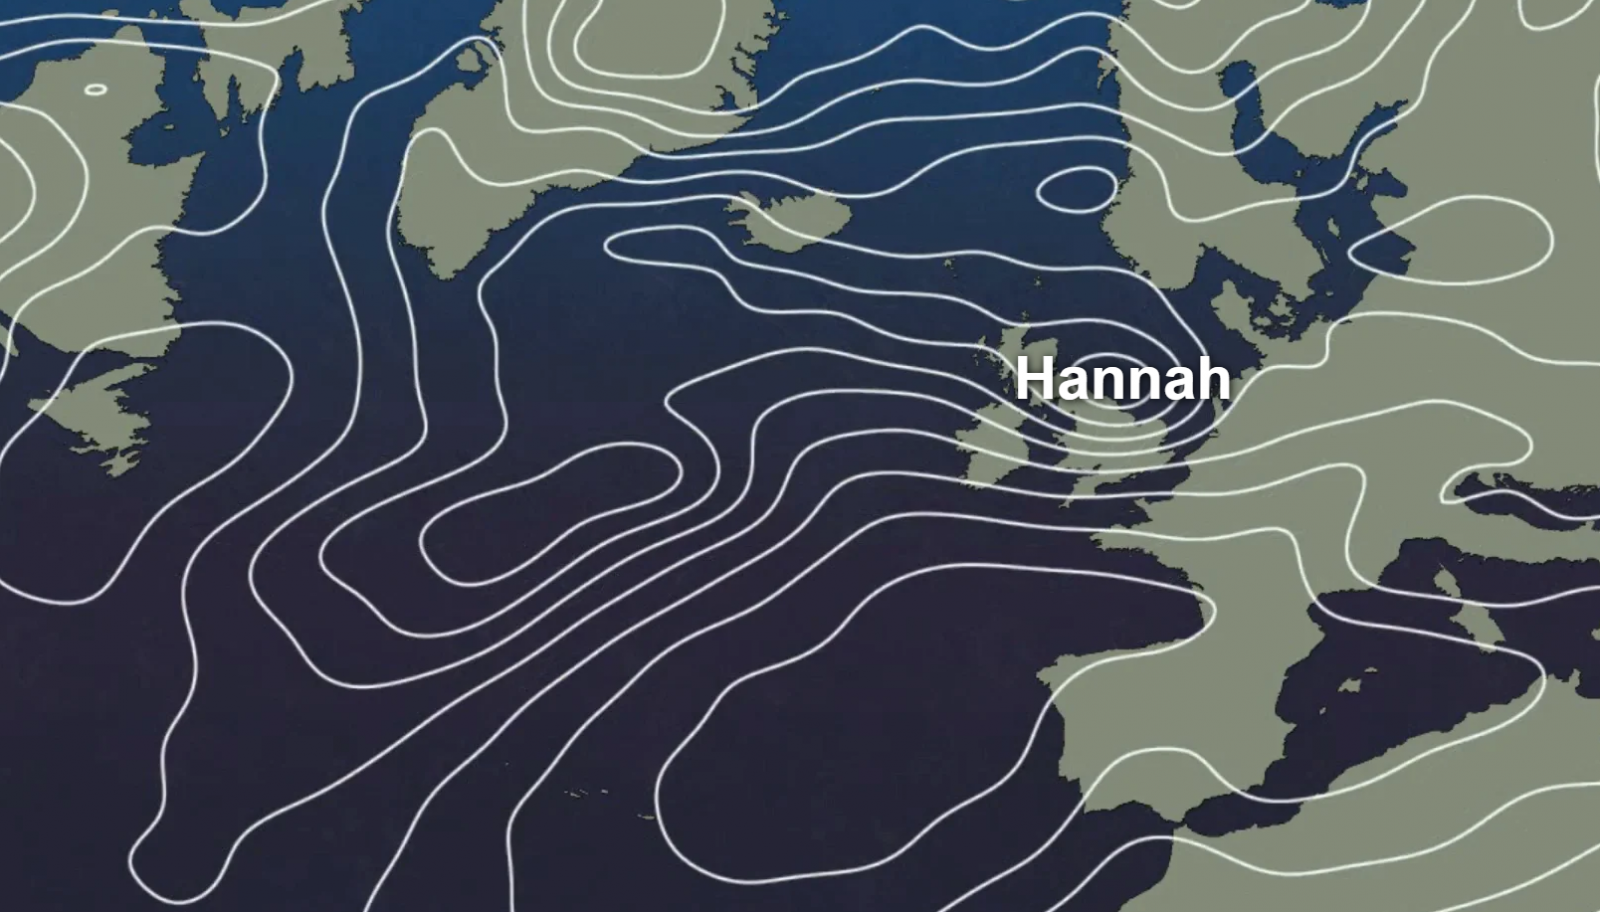 Michael Fish: Hannah first, then mixed but improving for the holiday weekend?